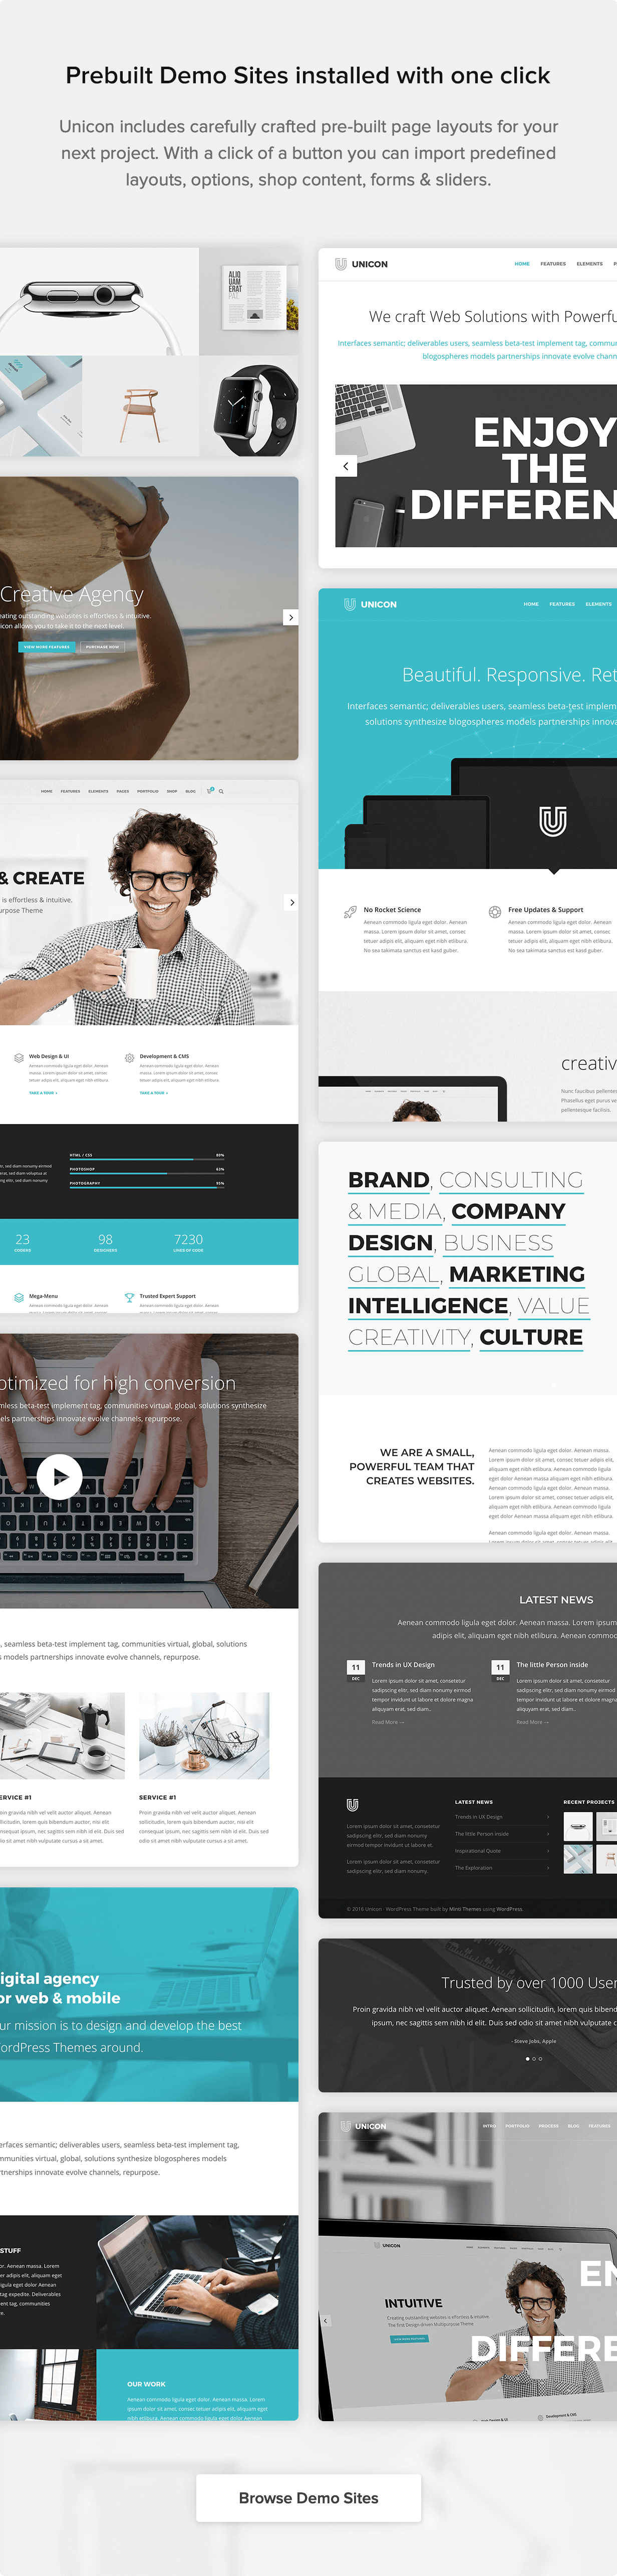 Unicon | Design-Driven Multipurpose Theme - 7